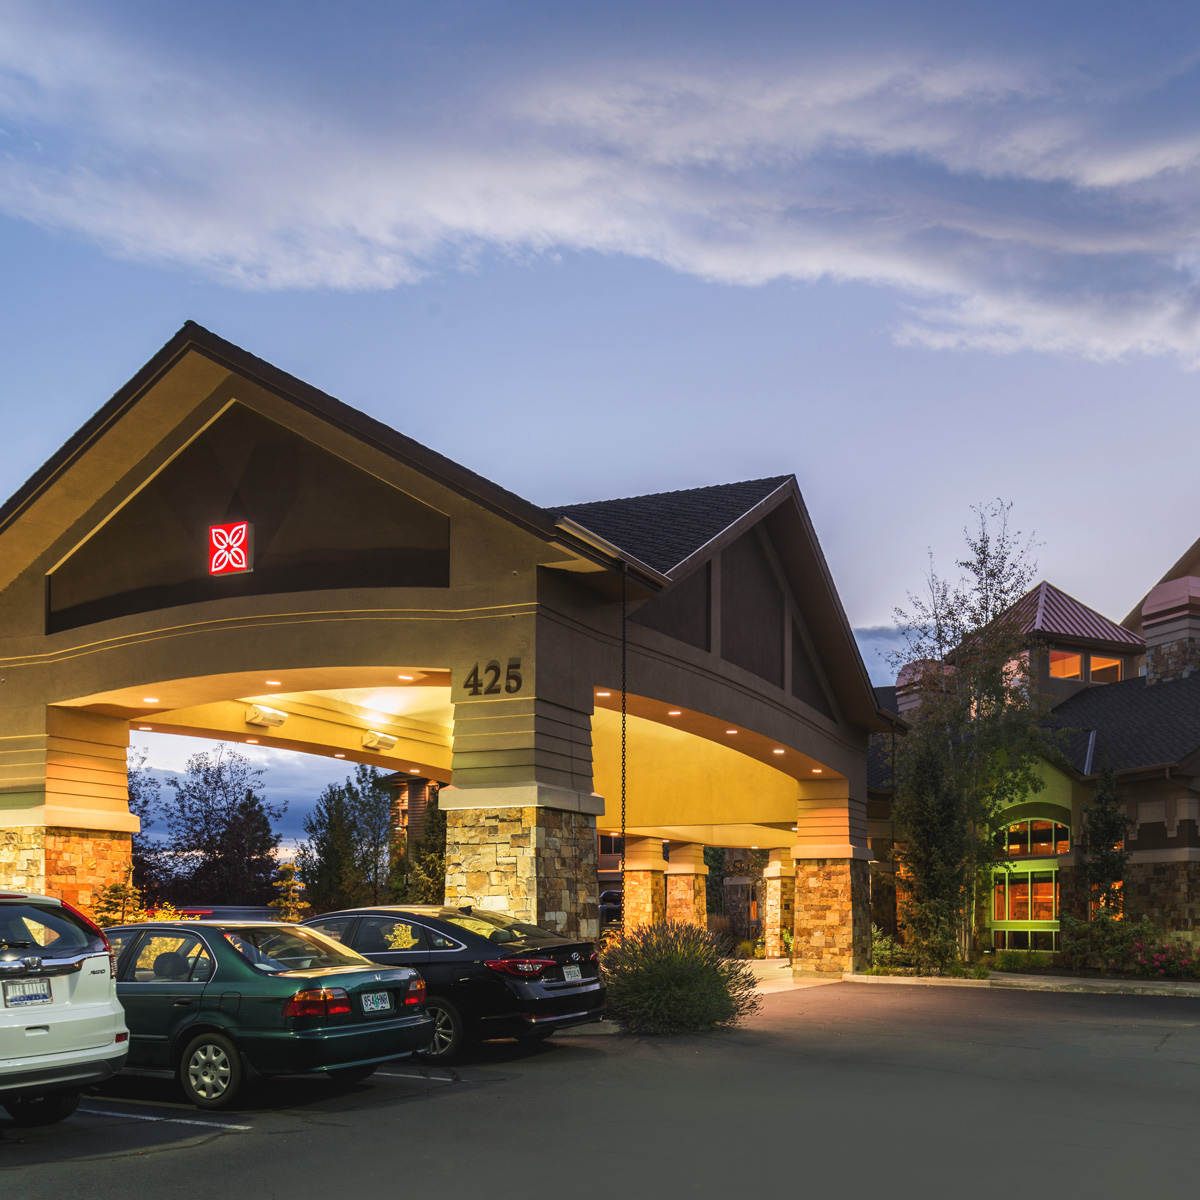 The Hilton Garden Inn in Bend Oregon Exterior